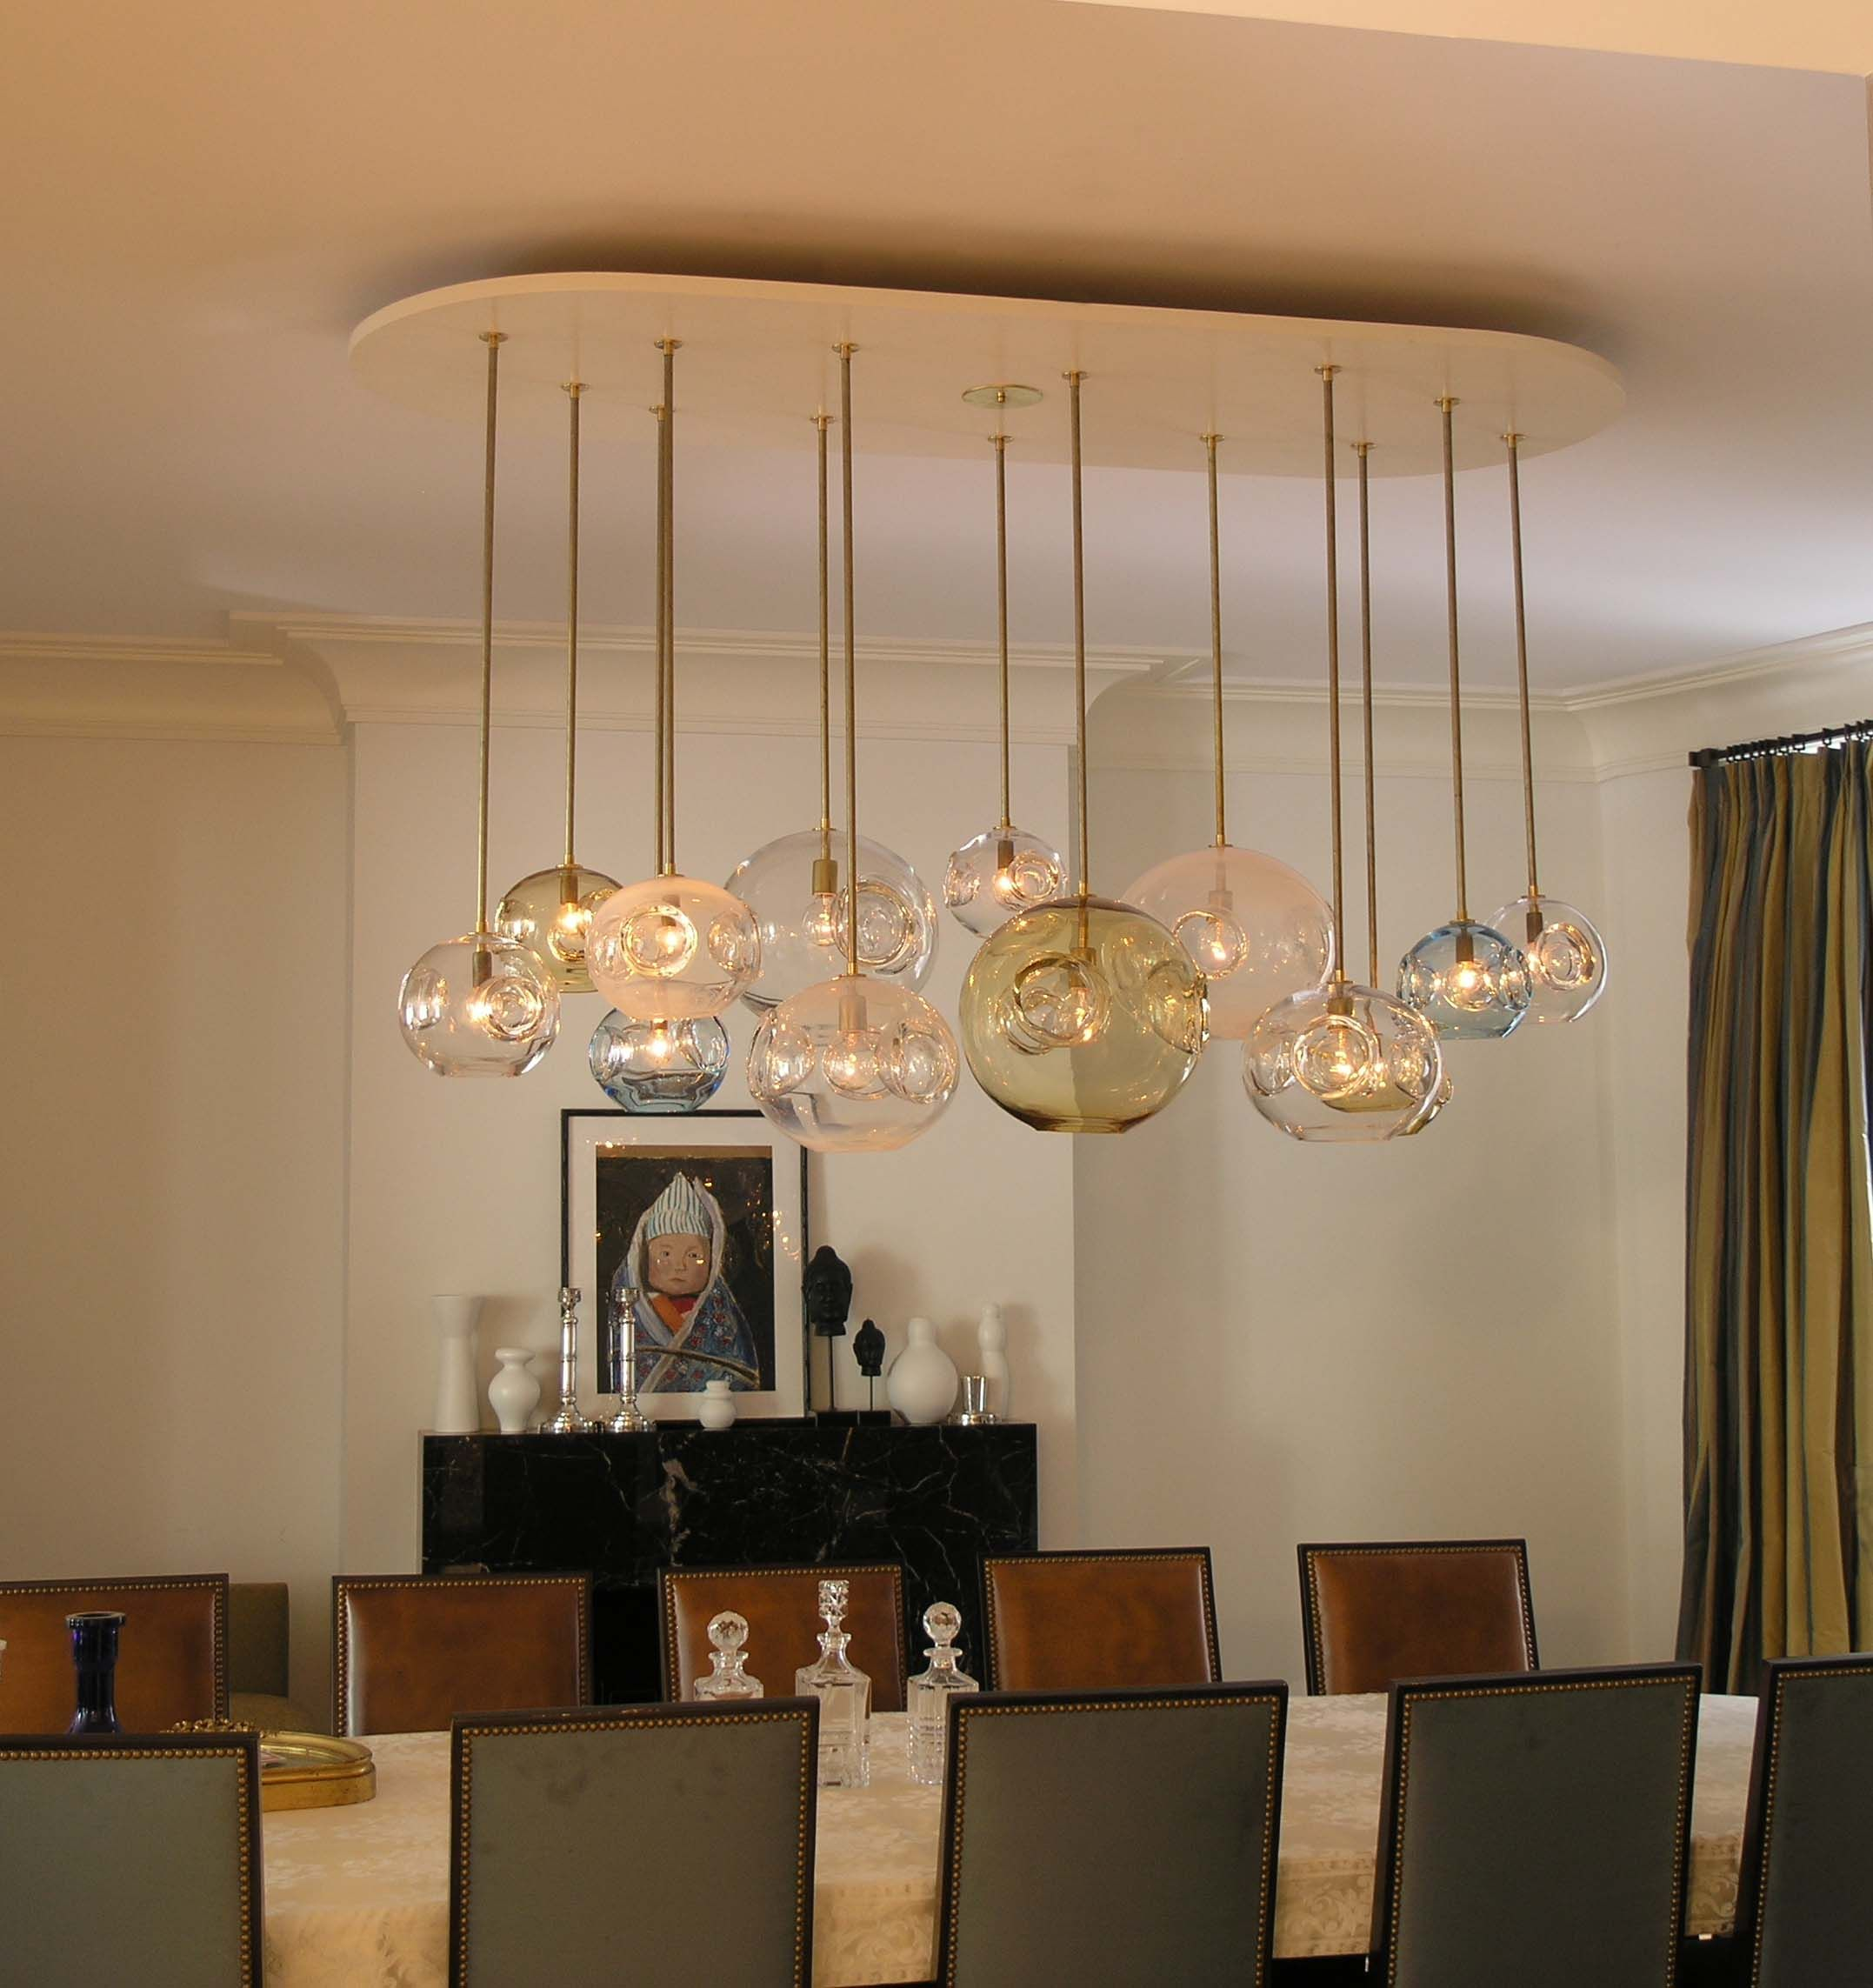 Light Fixture For Dining Room Creative Fair Creative Dining Room Lighting With Aqua Chandelier  Dining Room . Design Ideas